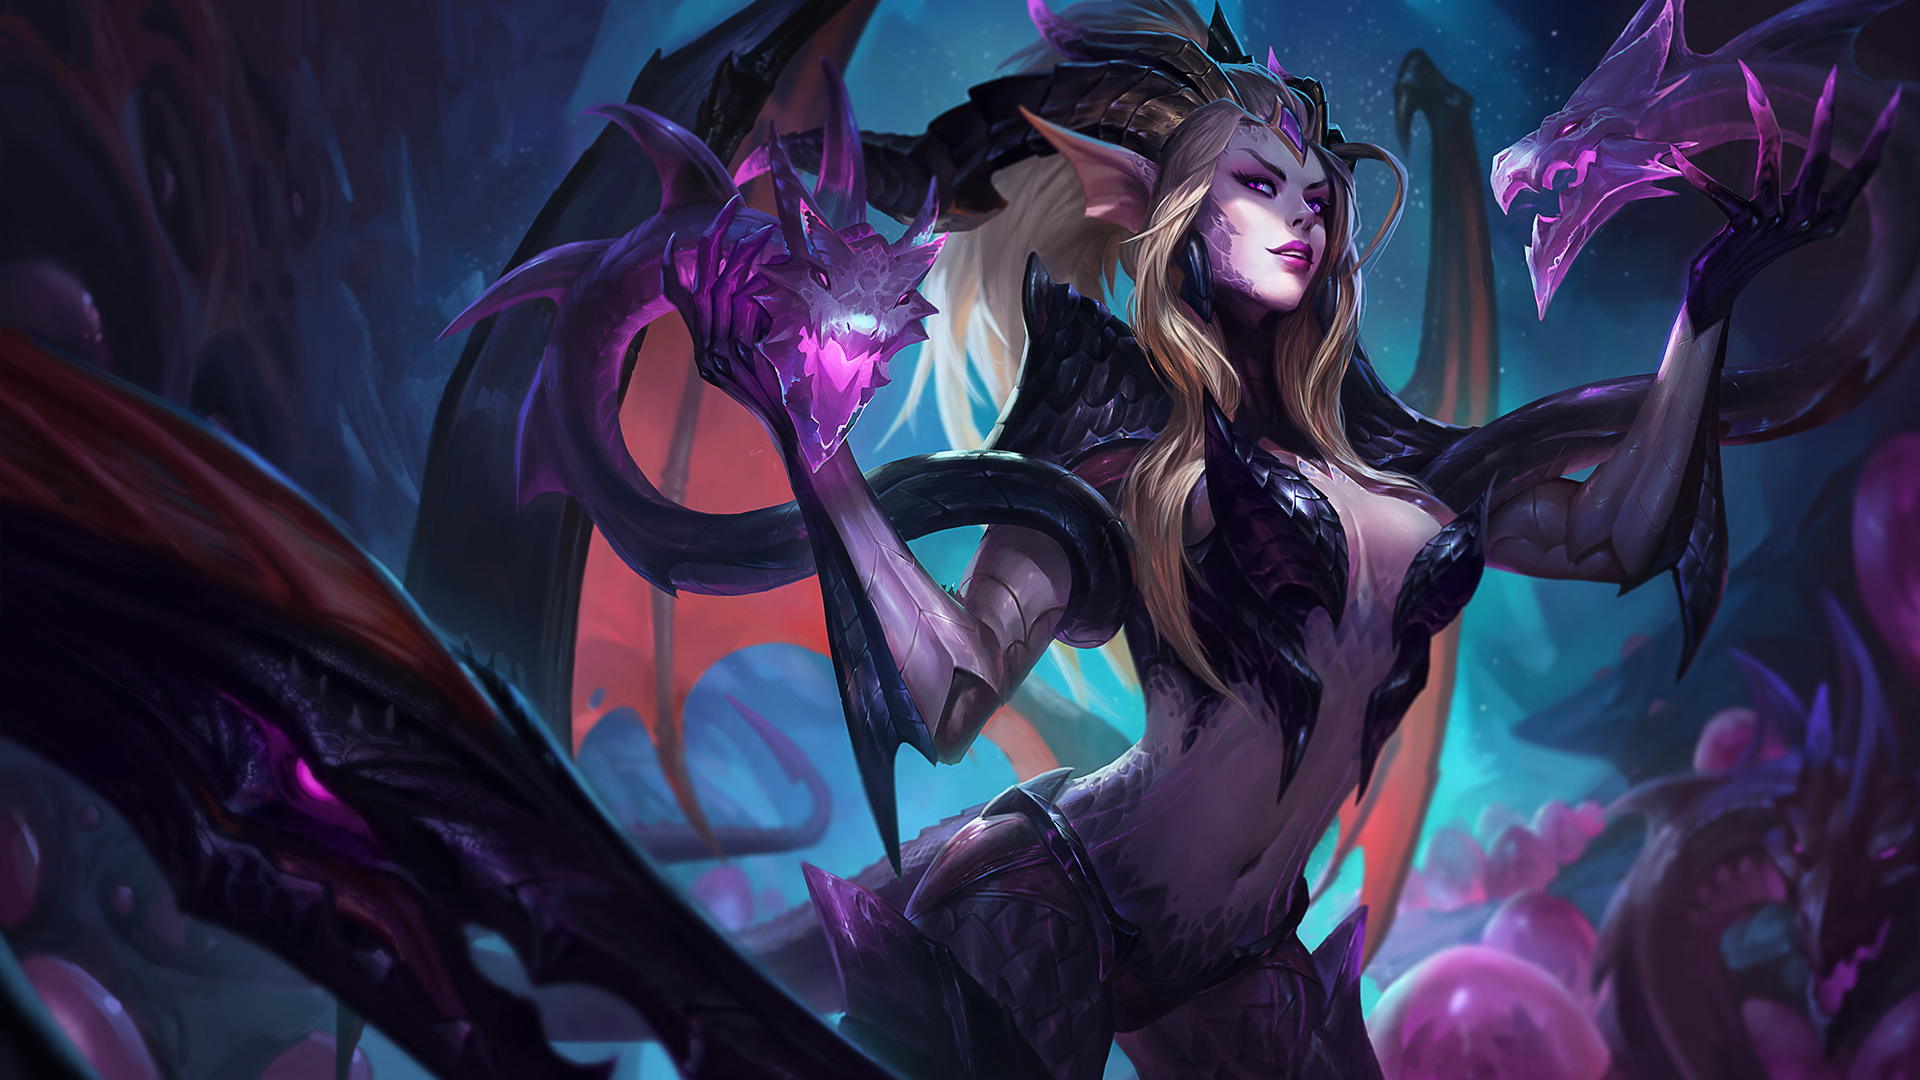 Dragon Sorceress Zyra splash art for League of Legends